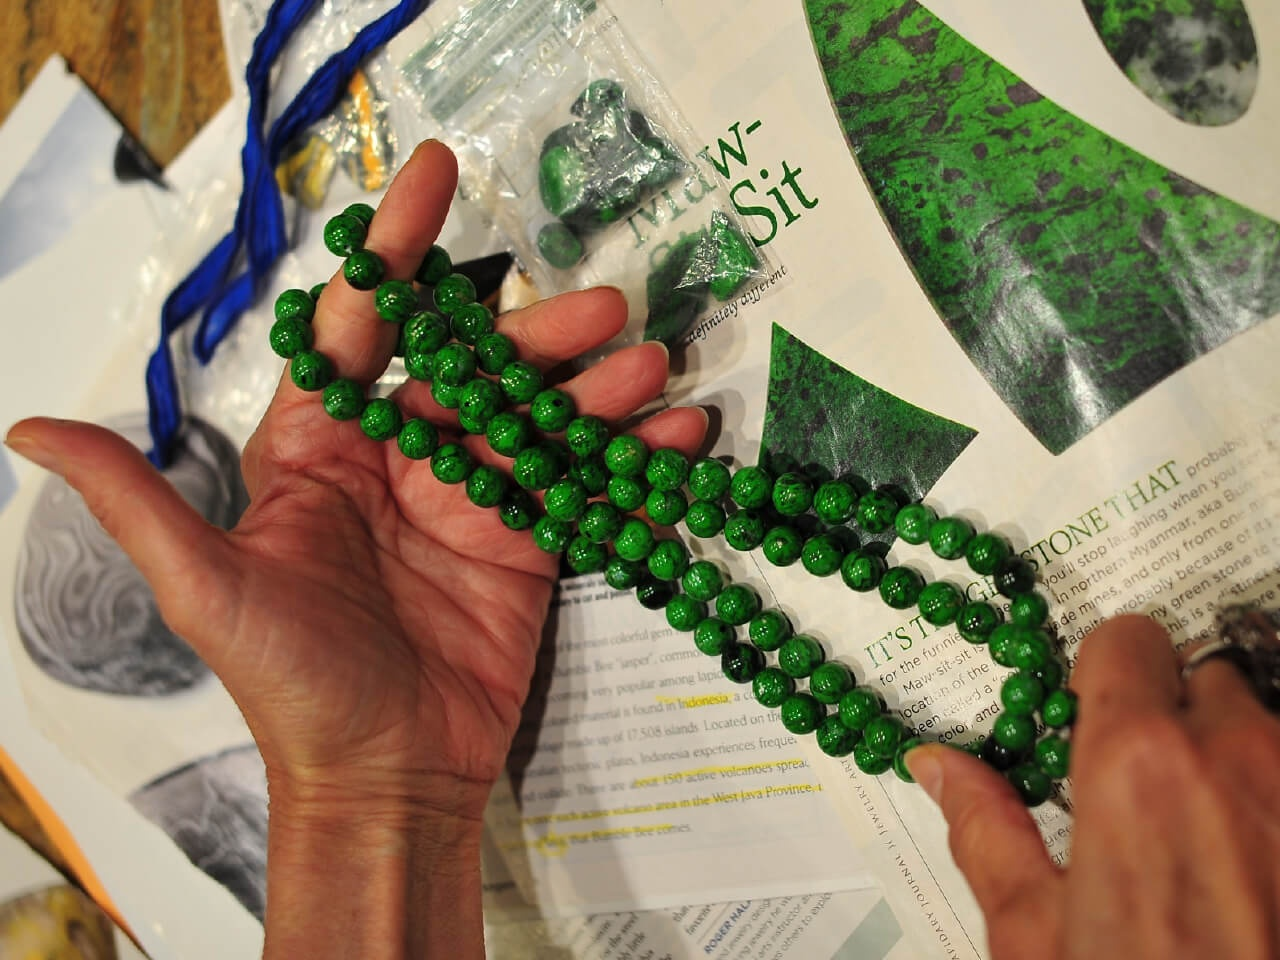 Hands holding a green necklace